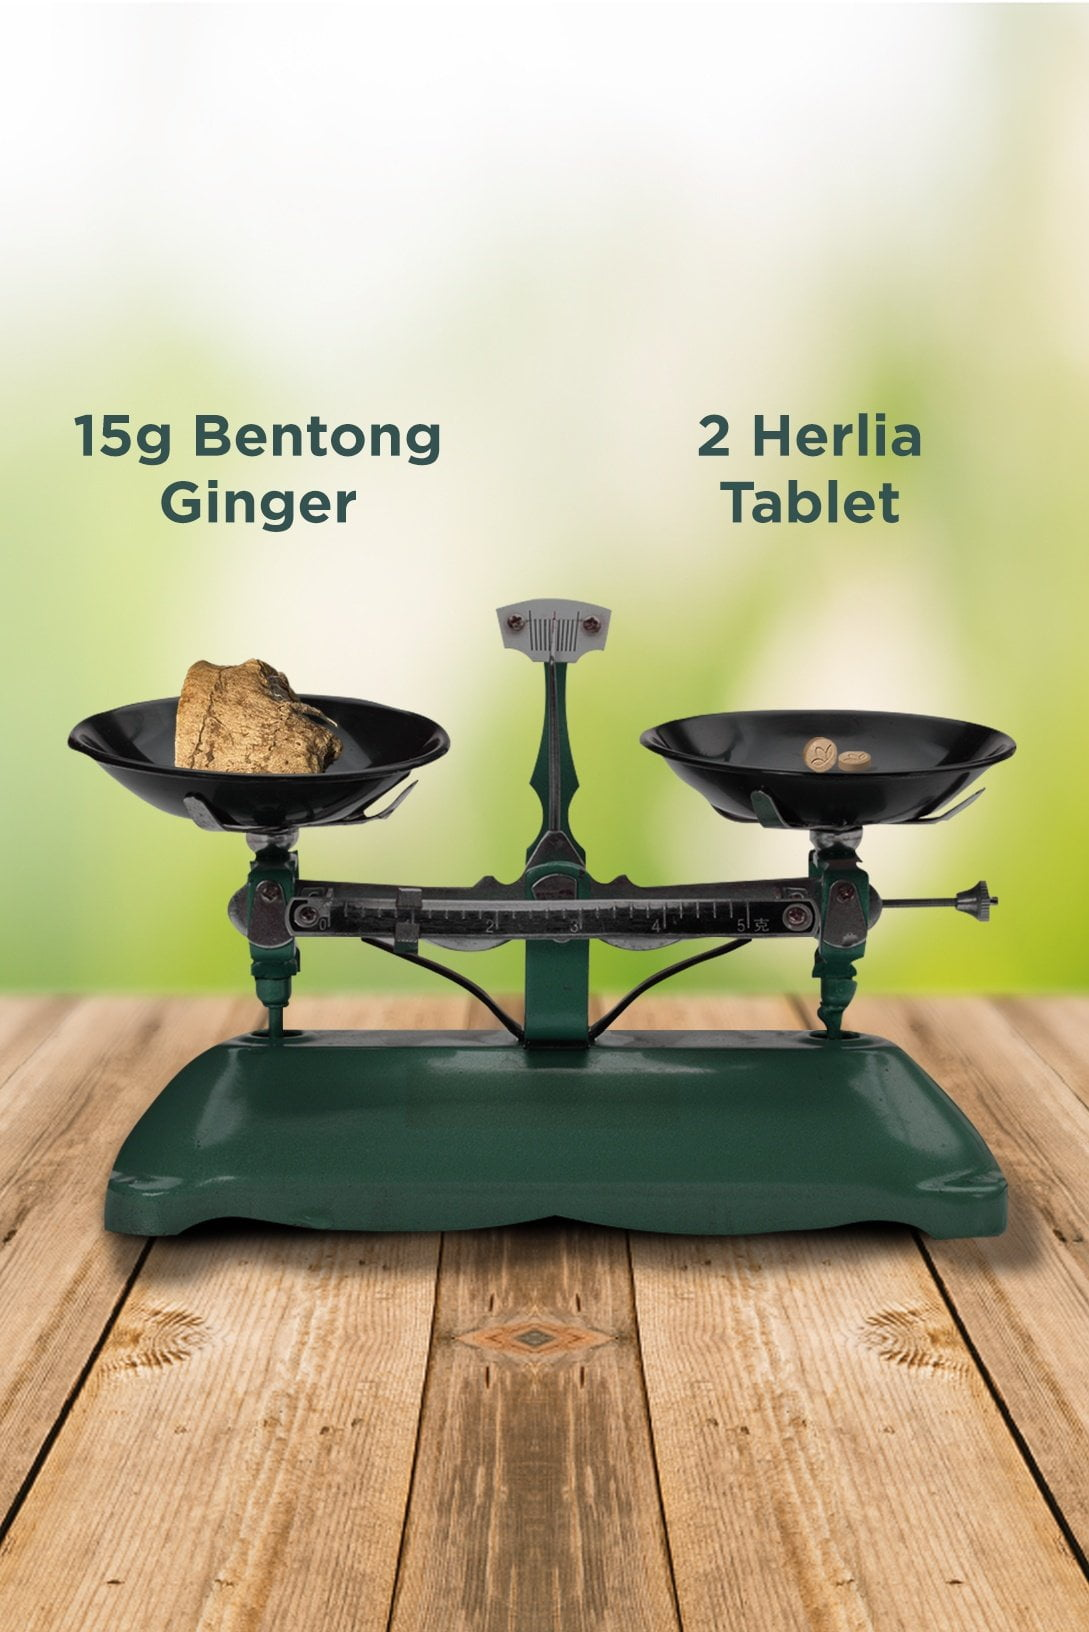 ginger on the table with a weighing mobile